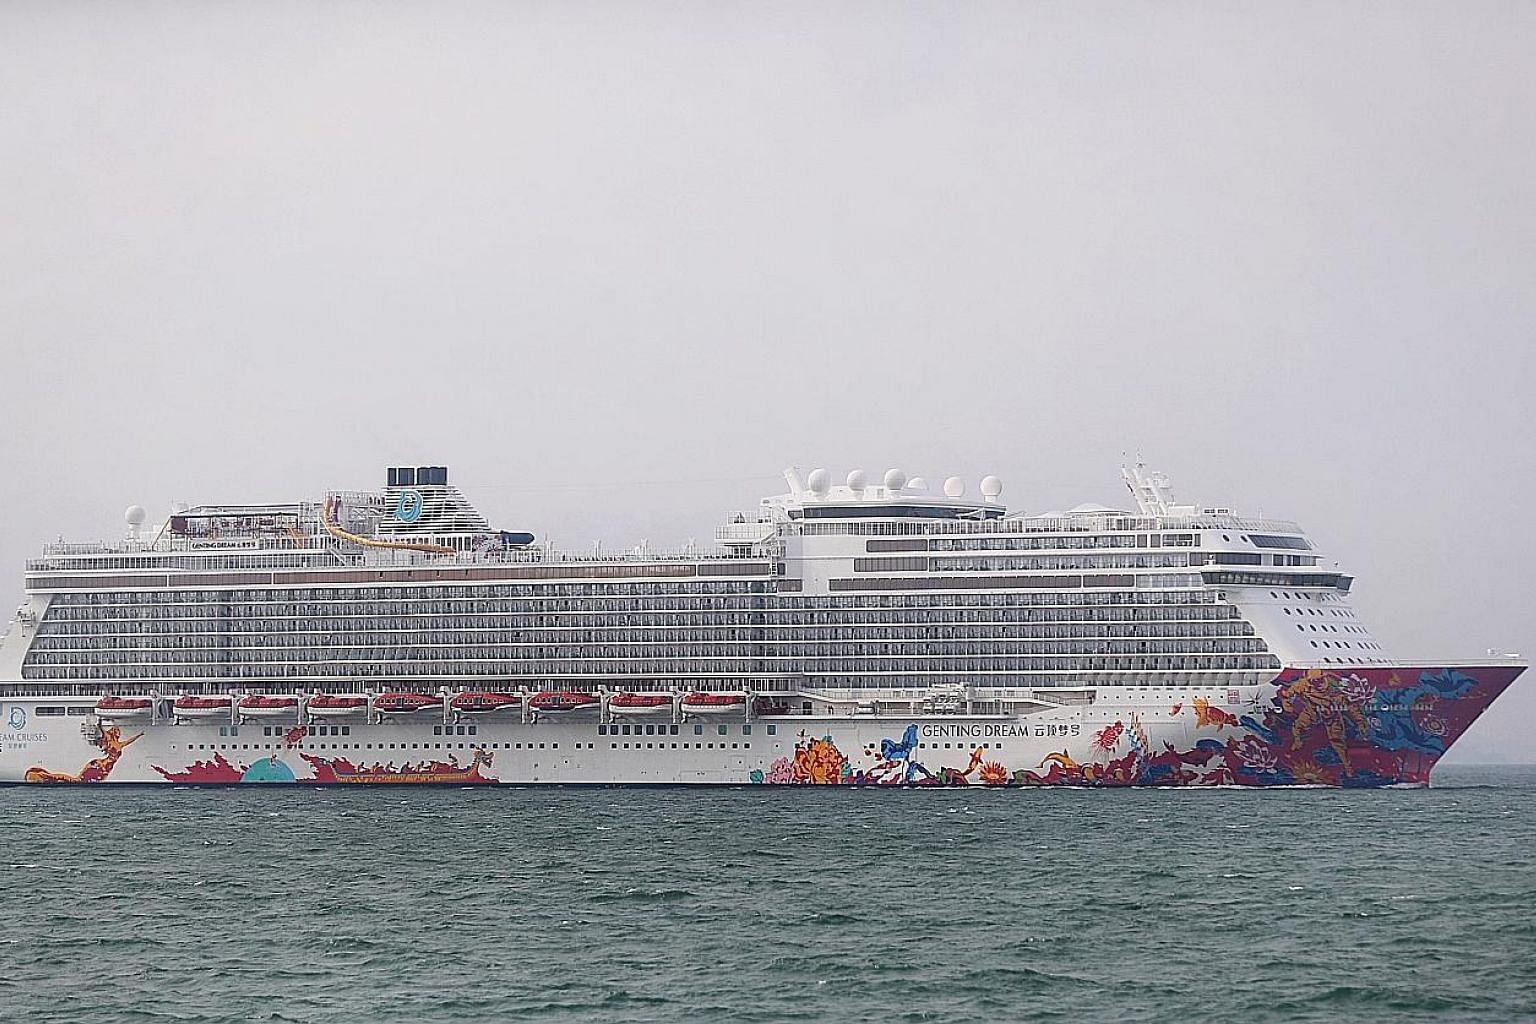 A photo of the Genting Dream cruise ship taken earlier this year. Despite a medical team on the ship providing assistance, including cardiopulmonary resuscitation, the boy could not be revived, said a spokesman for Dream Cruises. ST PHOTO: GAVIN FOO